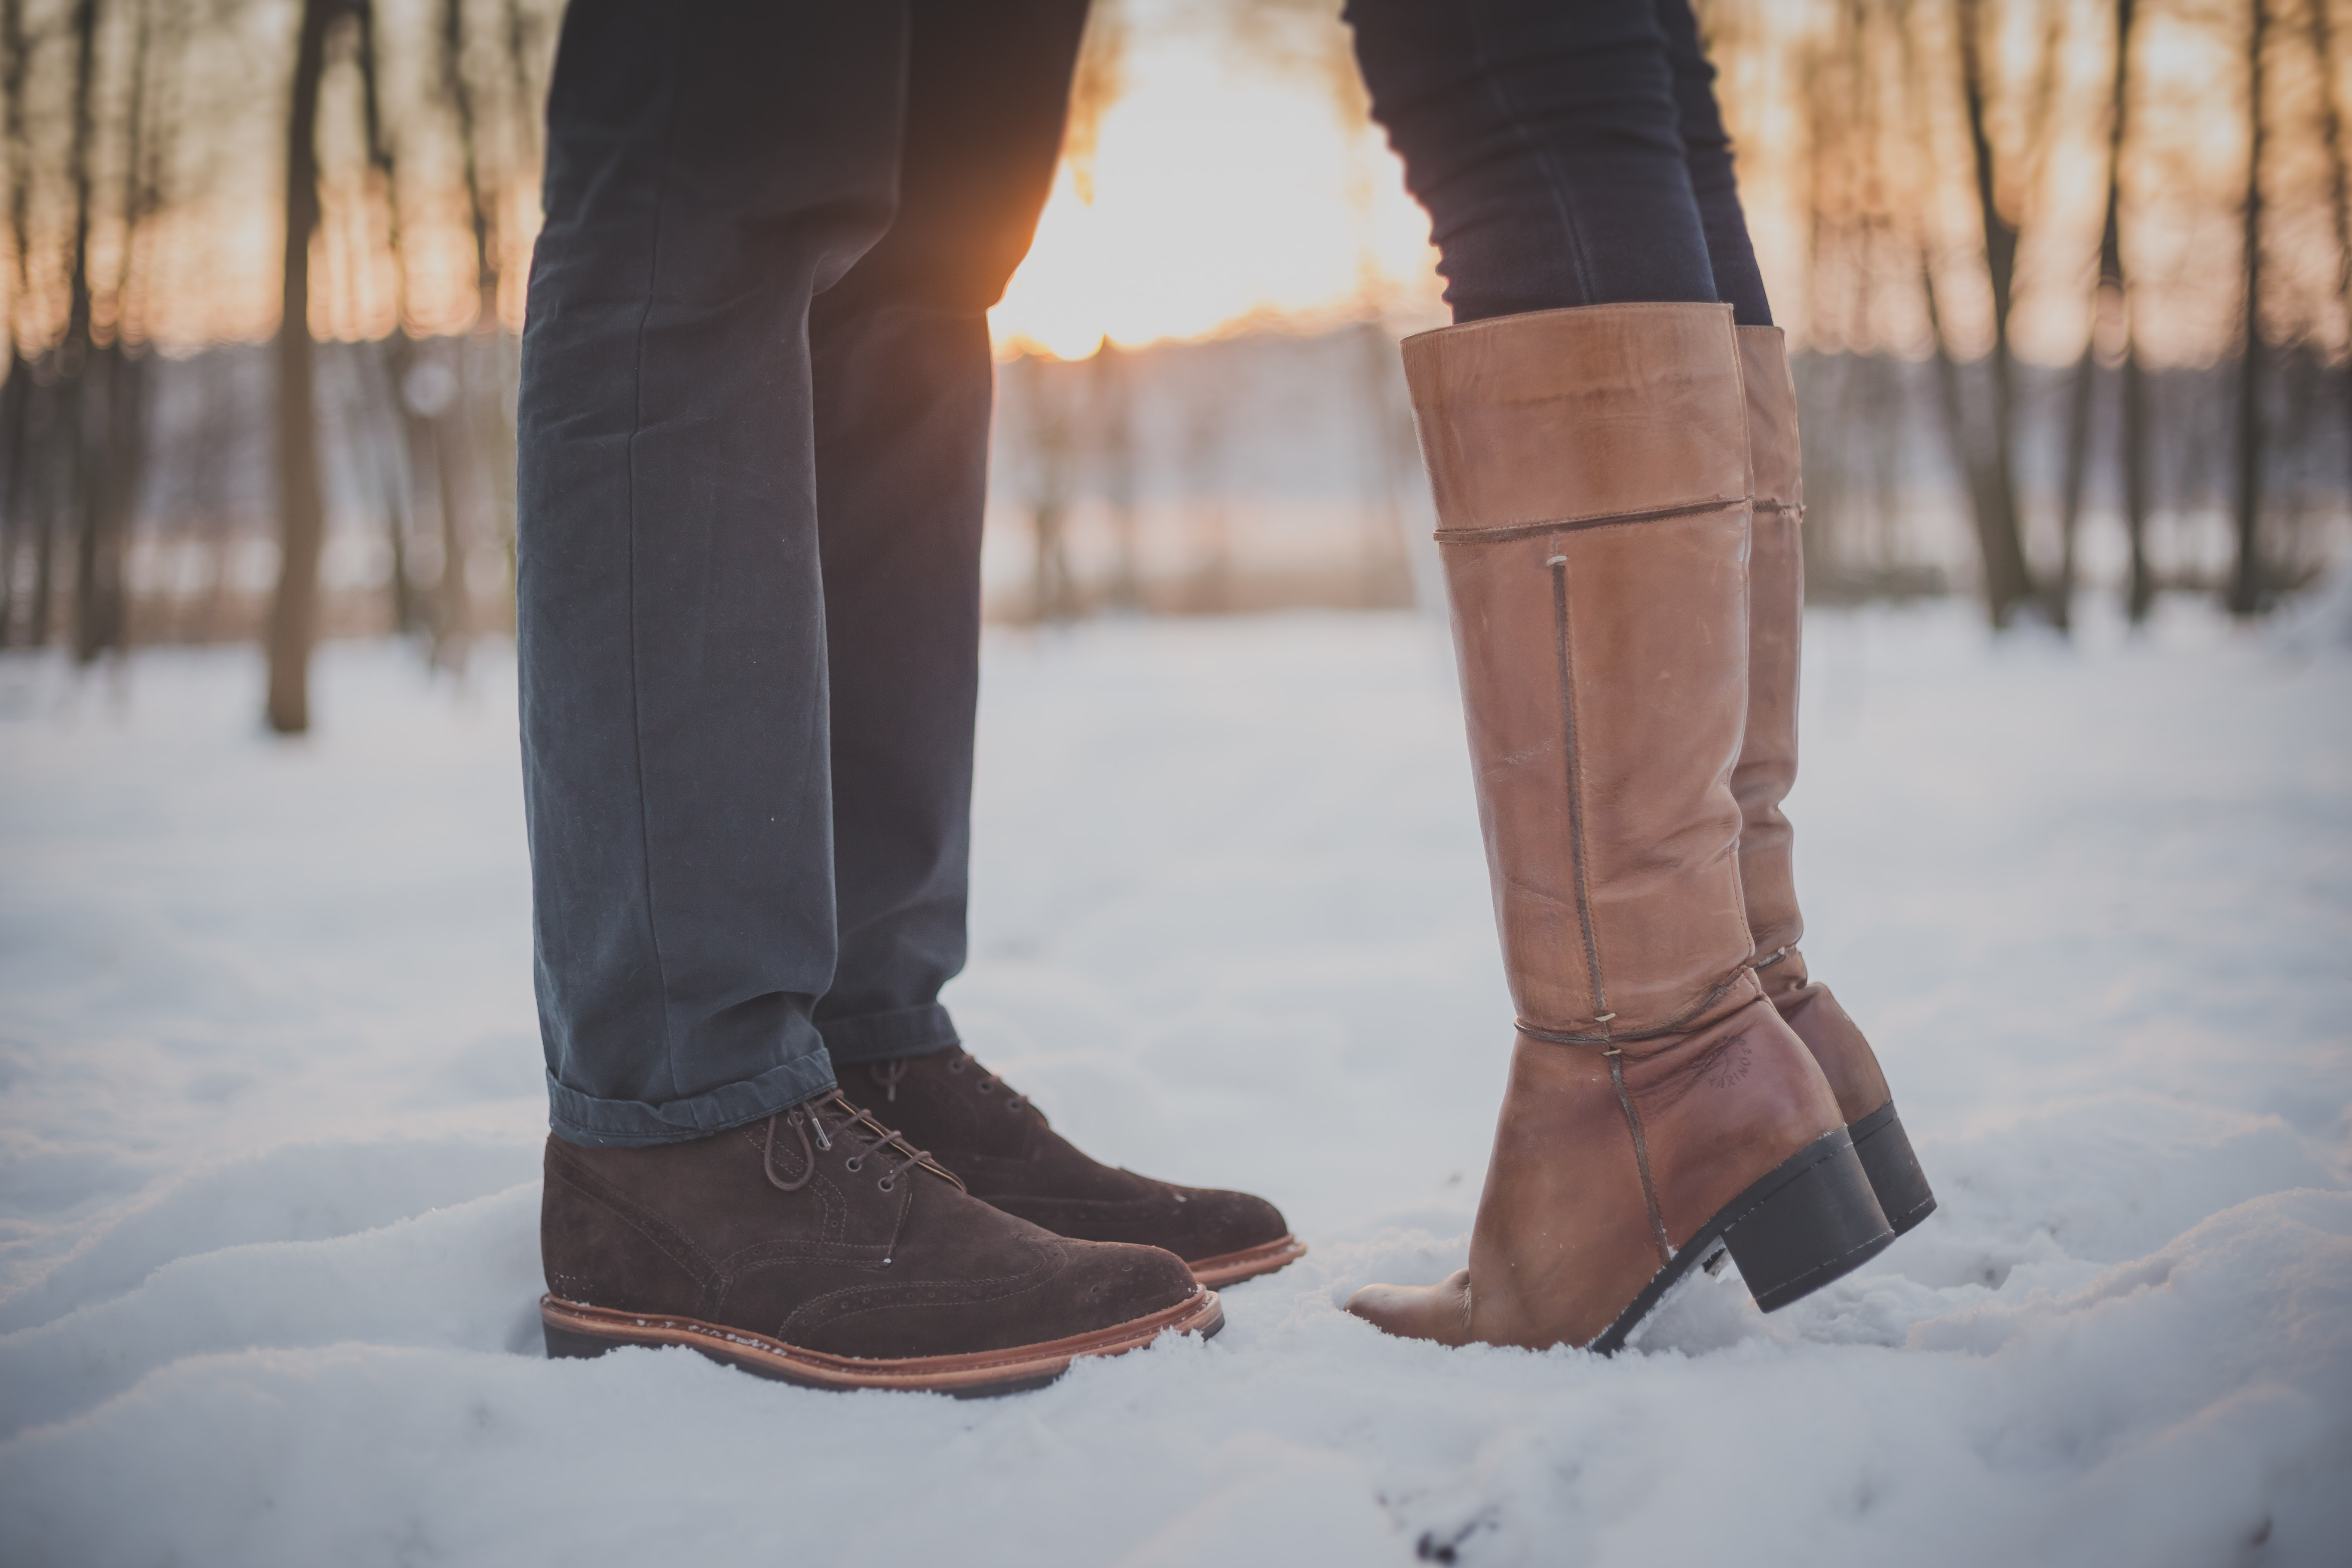 On a snowy day, a woman in boots rises on tip-toe to kiss a man